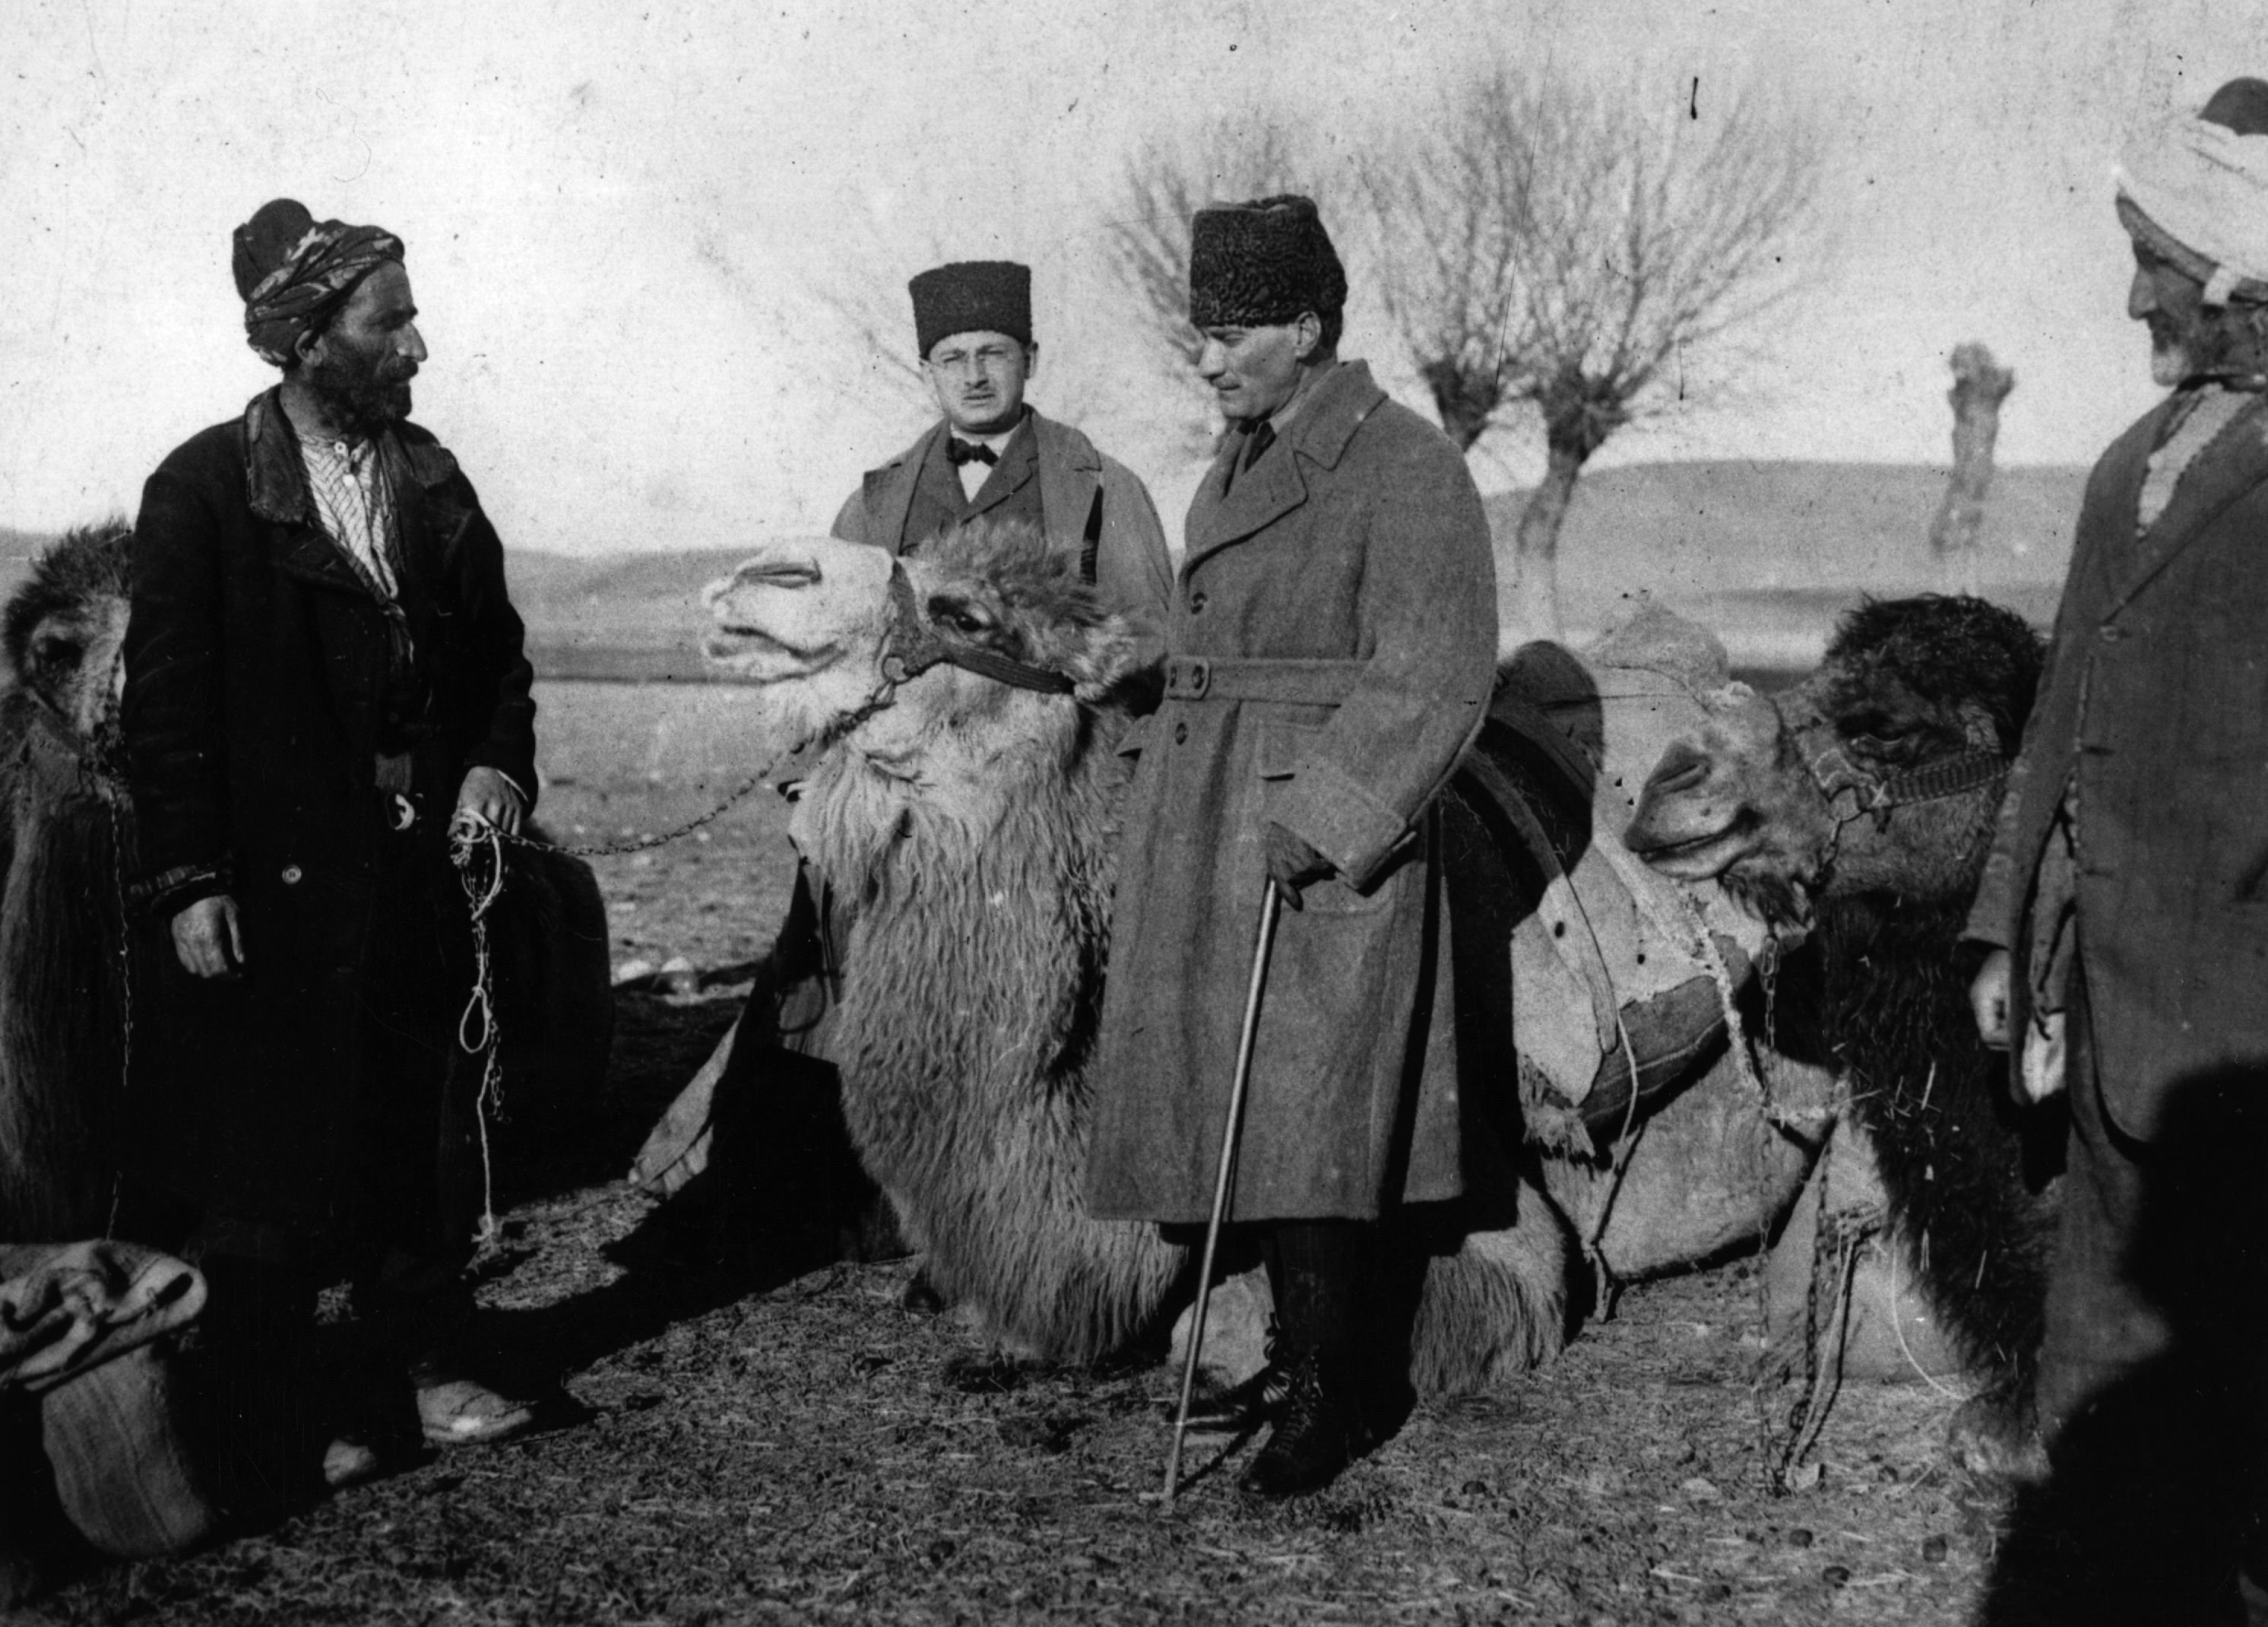 Mustafa Kemal Pasha with camel drivers during the Turko-Greek War in 1922. (Getty Images)